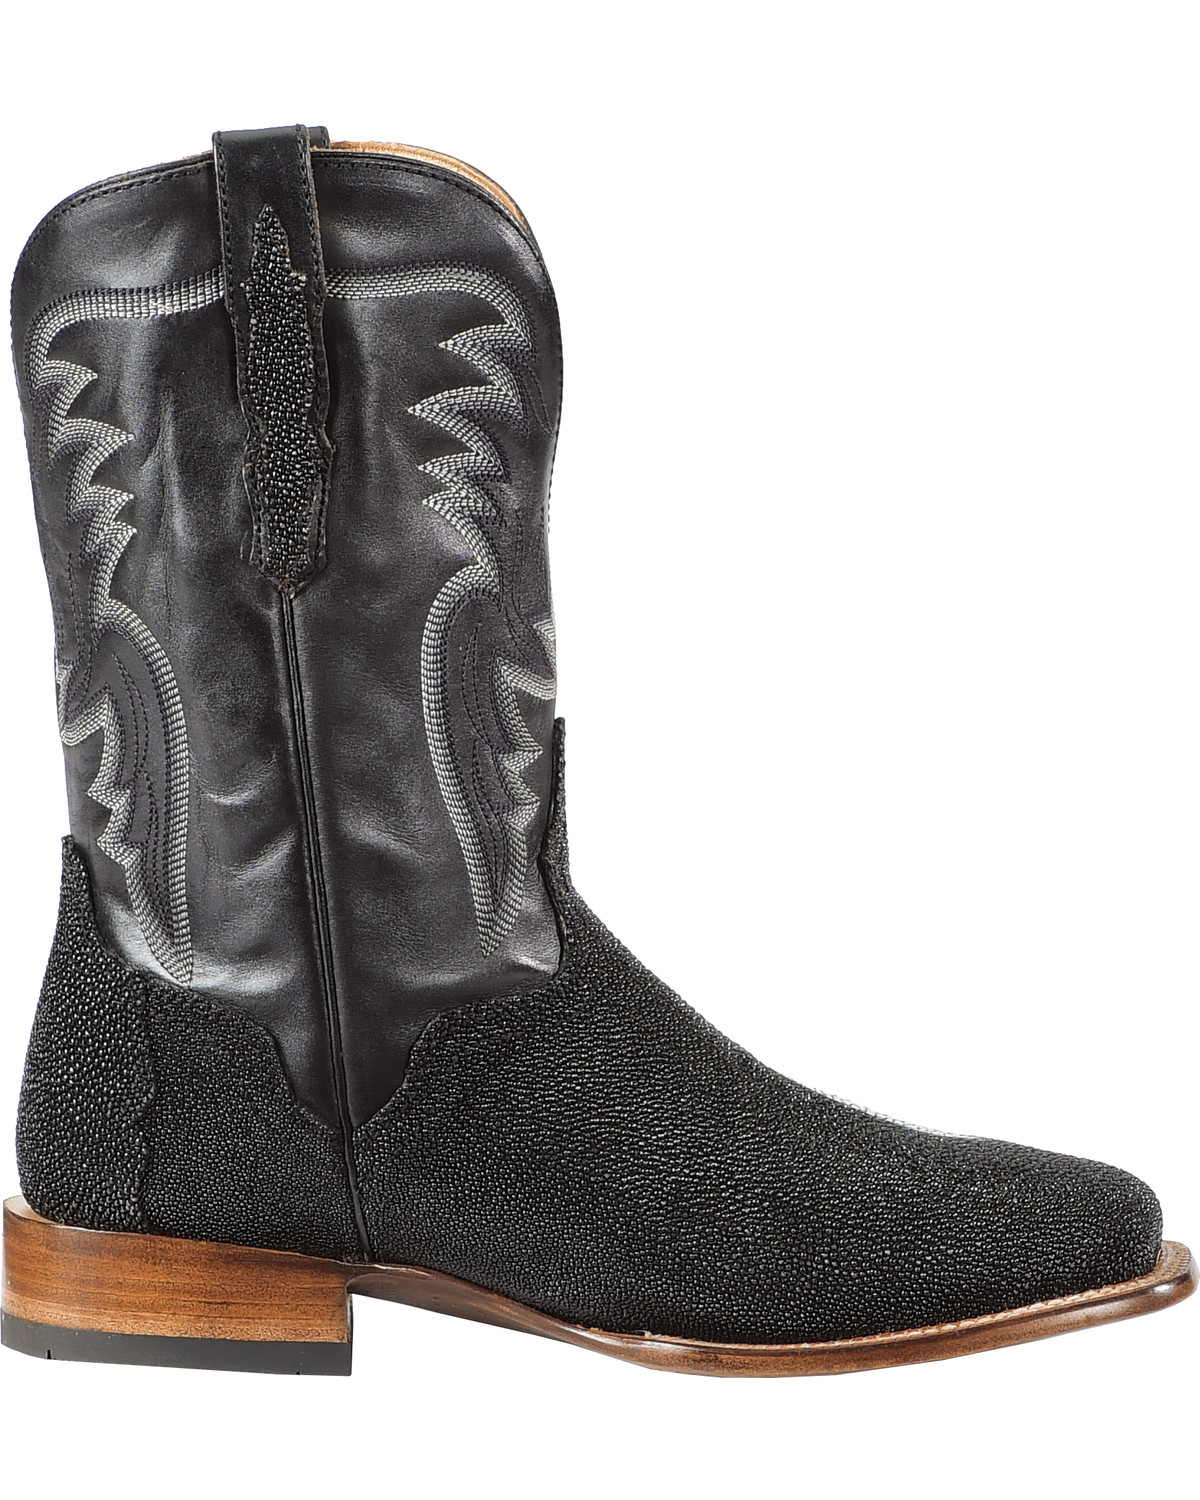 El Dorado Men's Handmade Stingray Stockman Boots